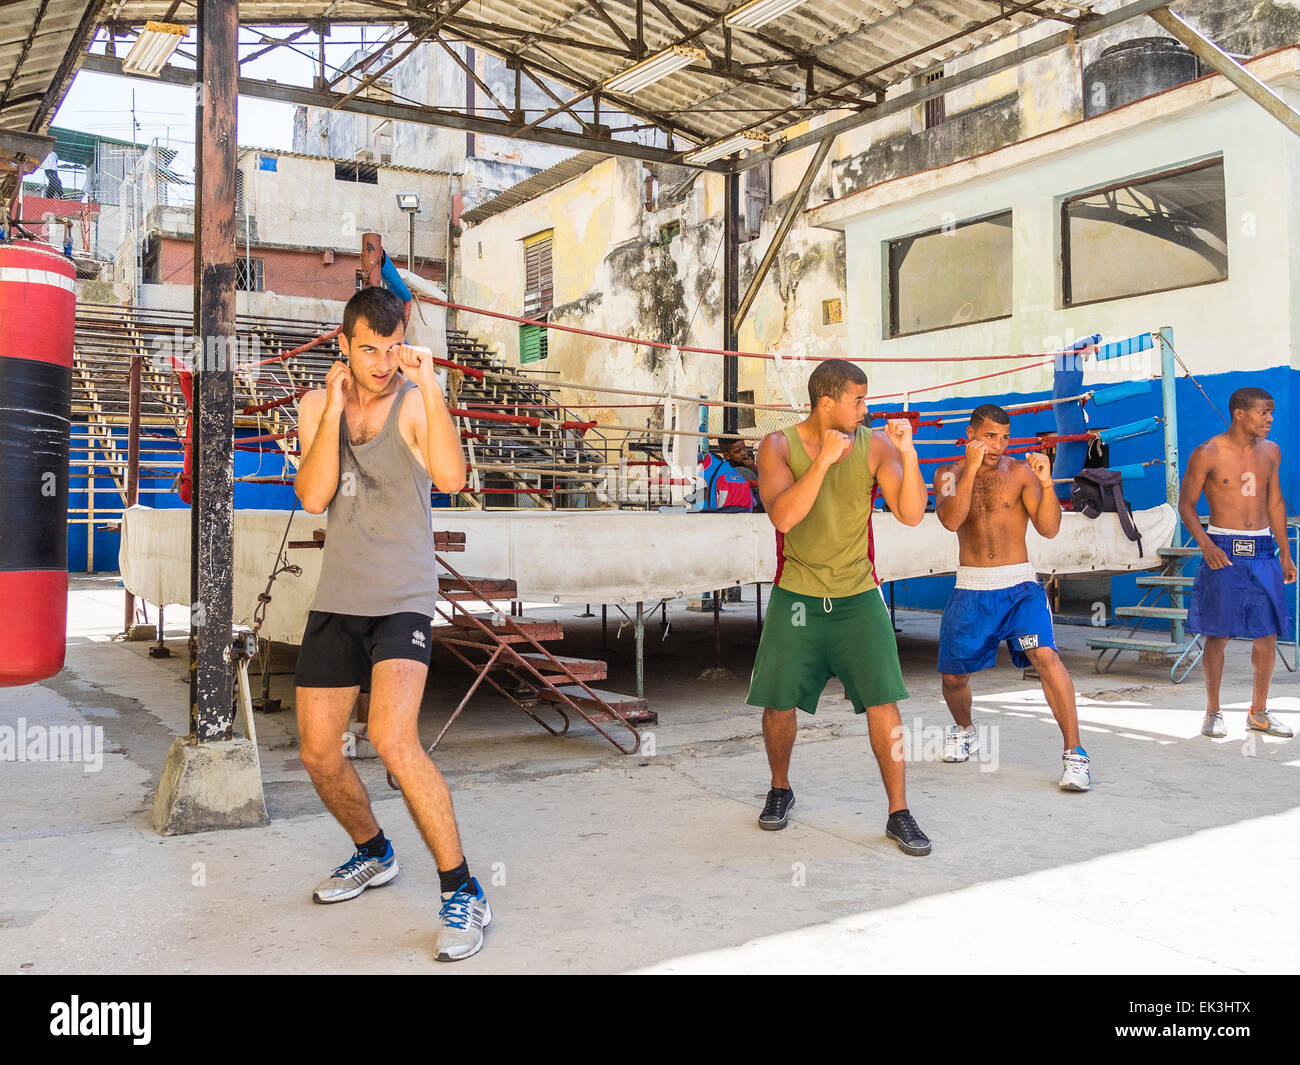 Cuban boxers train outside by the boxing ring at the Rafael Trejo Boxing Gym in Havana. - Stock Image